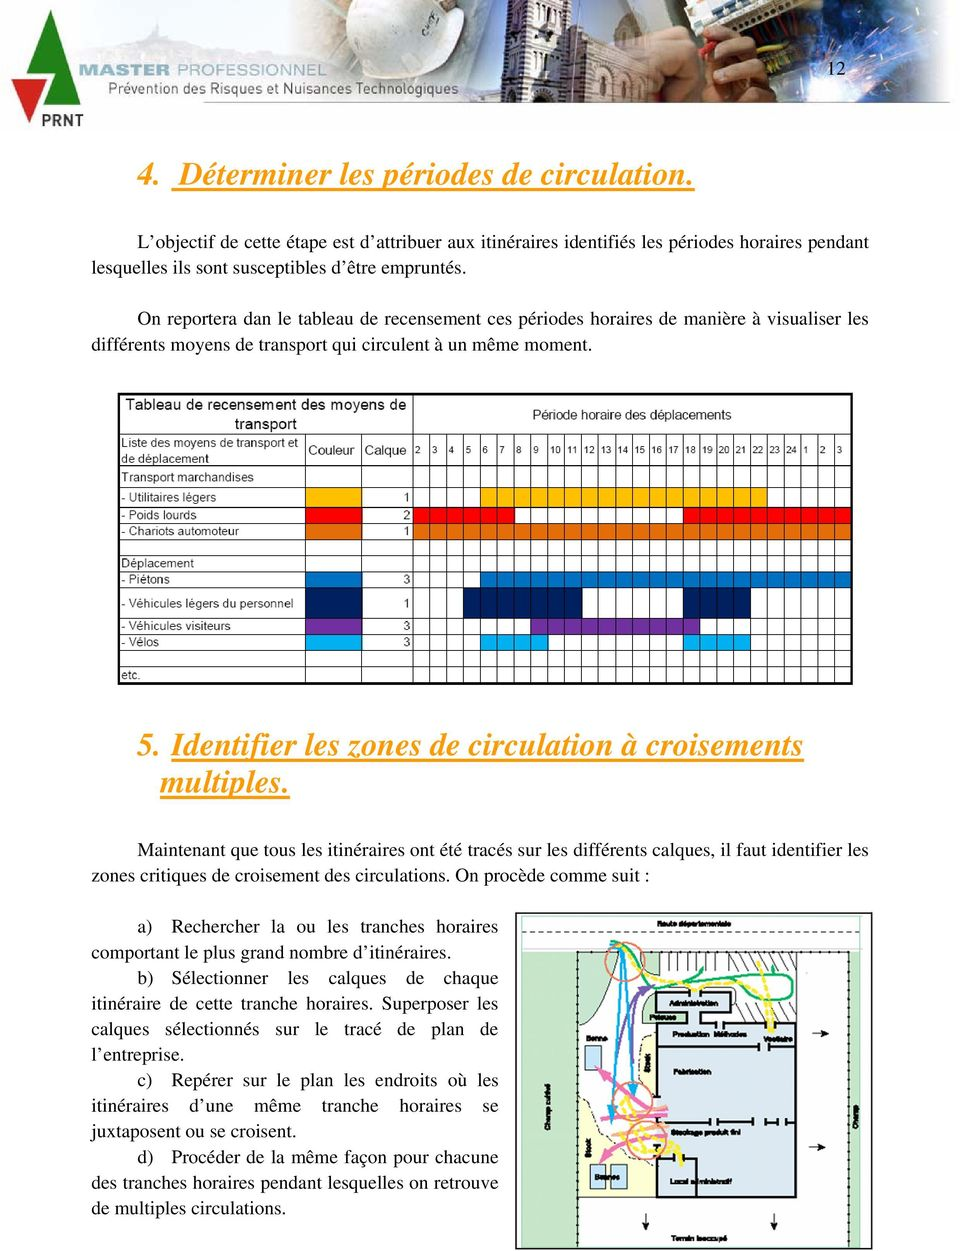 Identifier les zones de circulation à croisements multiples.